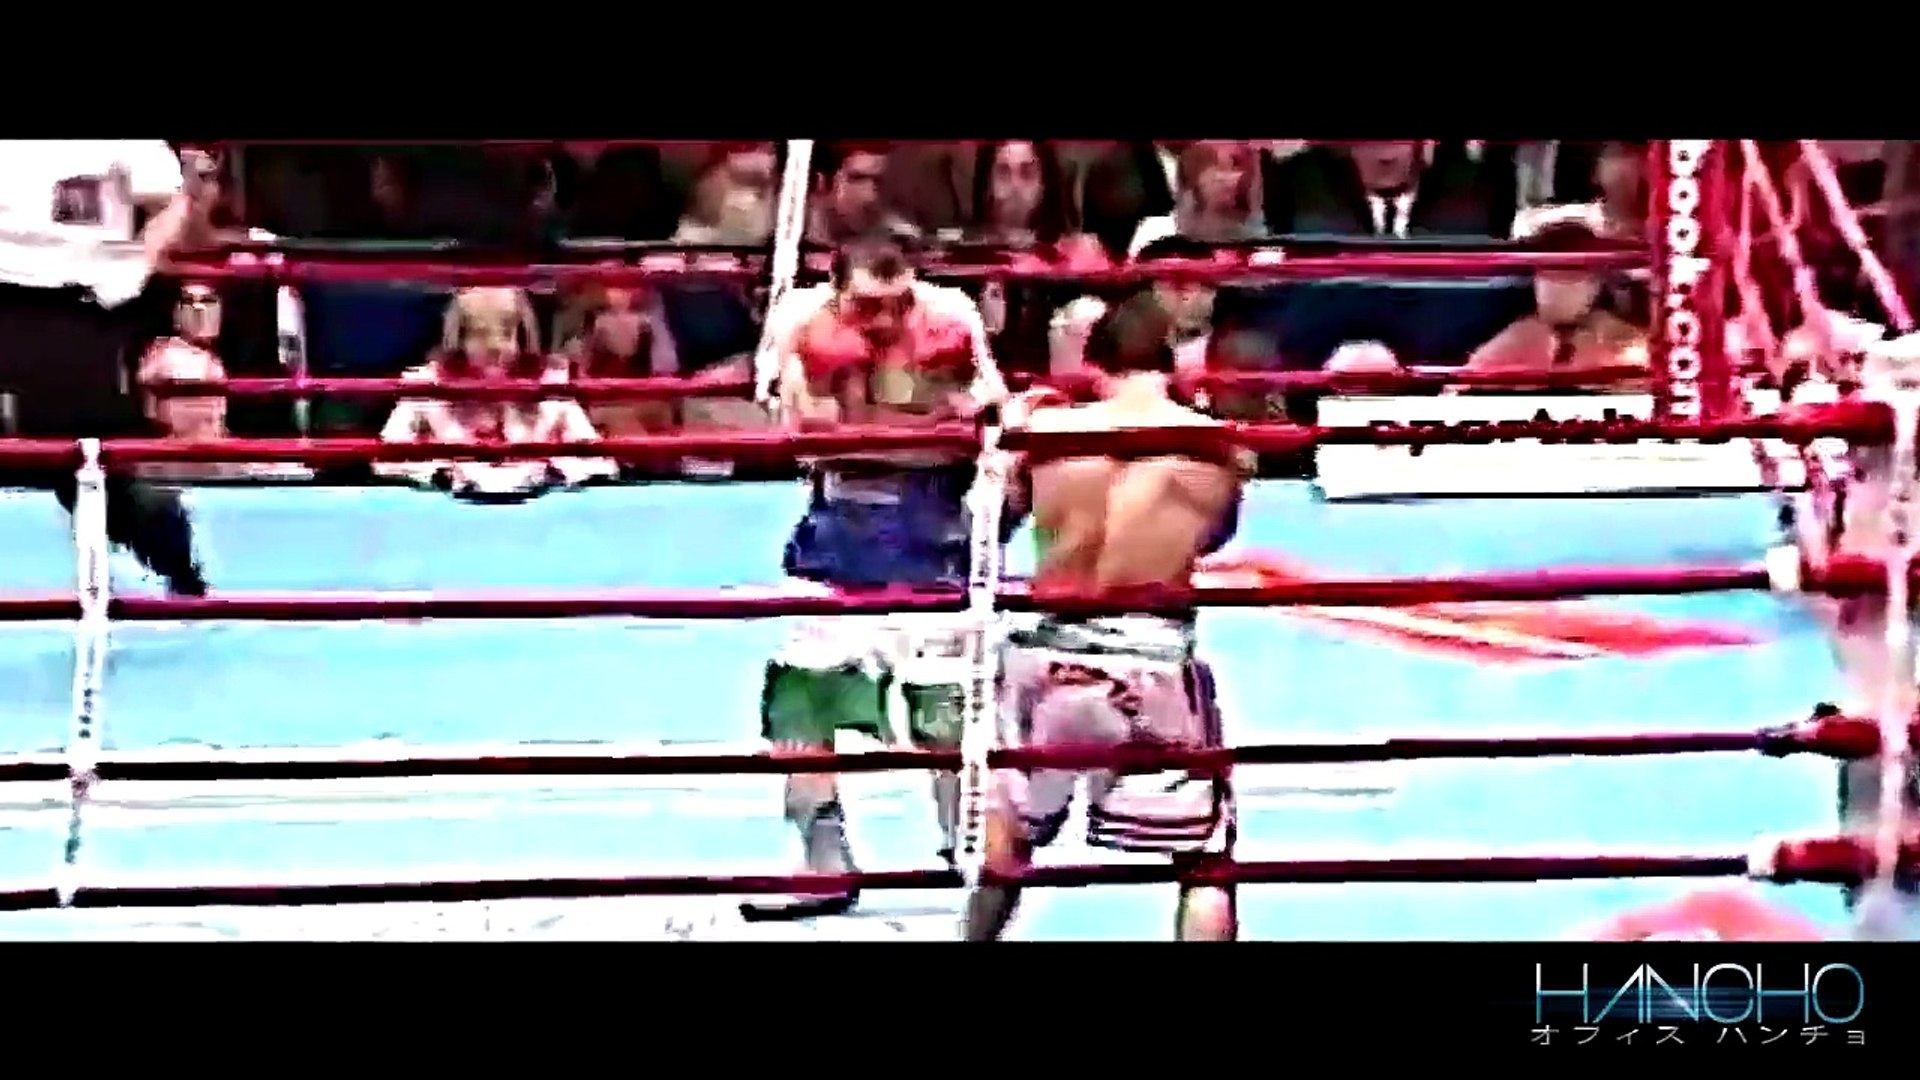 Miguel cotto Fights HD _ Showtime HBO Boxing 2016 new _ 2016 new boxing-PK_zvty9JzM